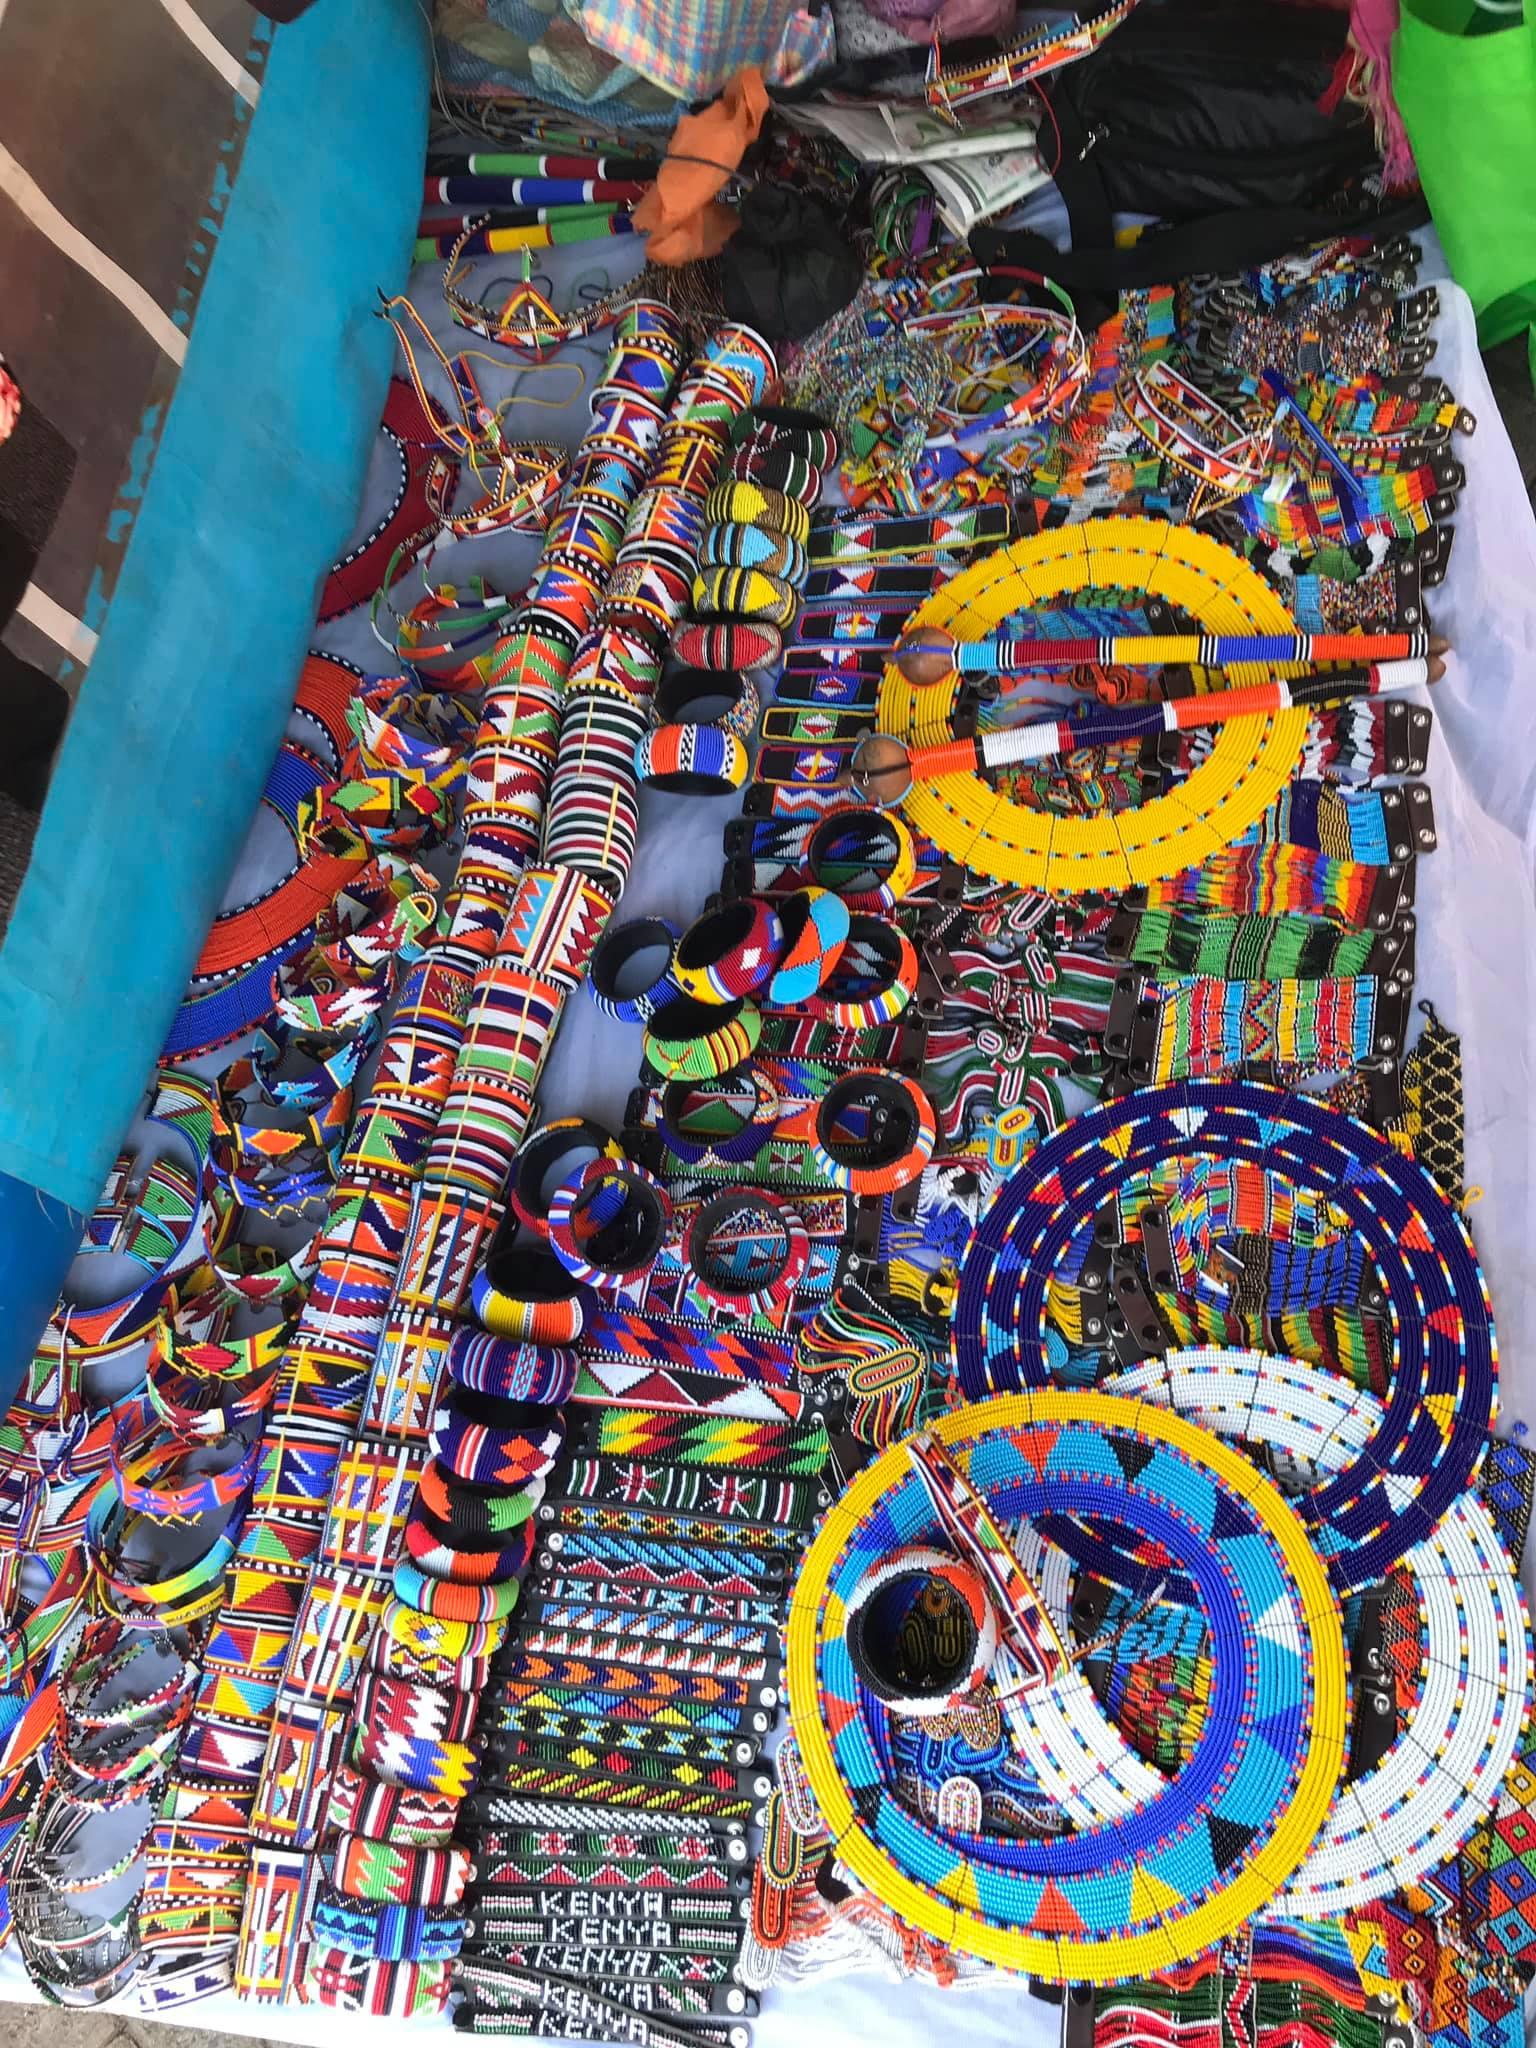 No way I wasn't going to raid the Maasai Market. Whats really cool about this is that it moves to various different malls and venues through out the week. Love the concept of having traditional markets at the malls.